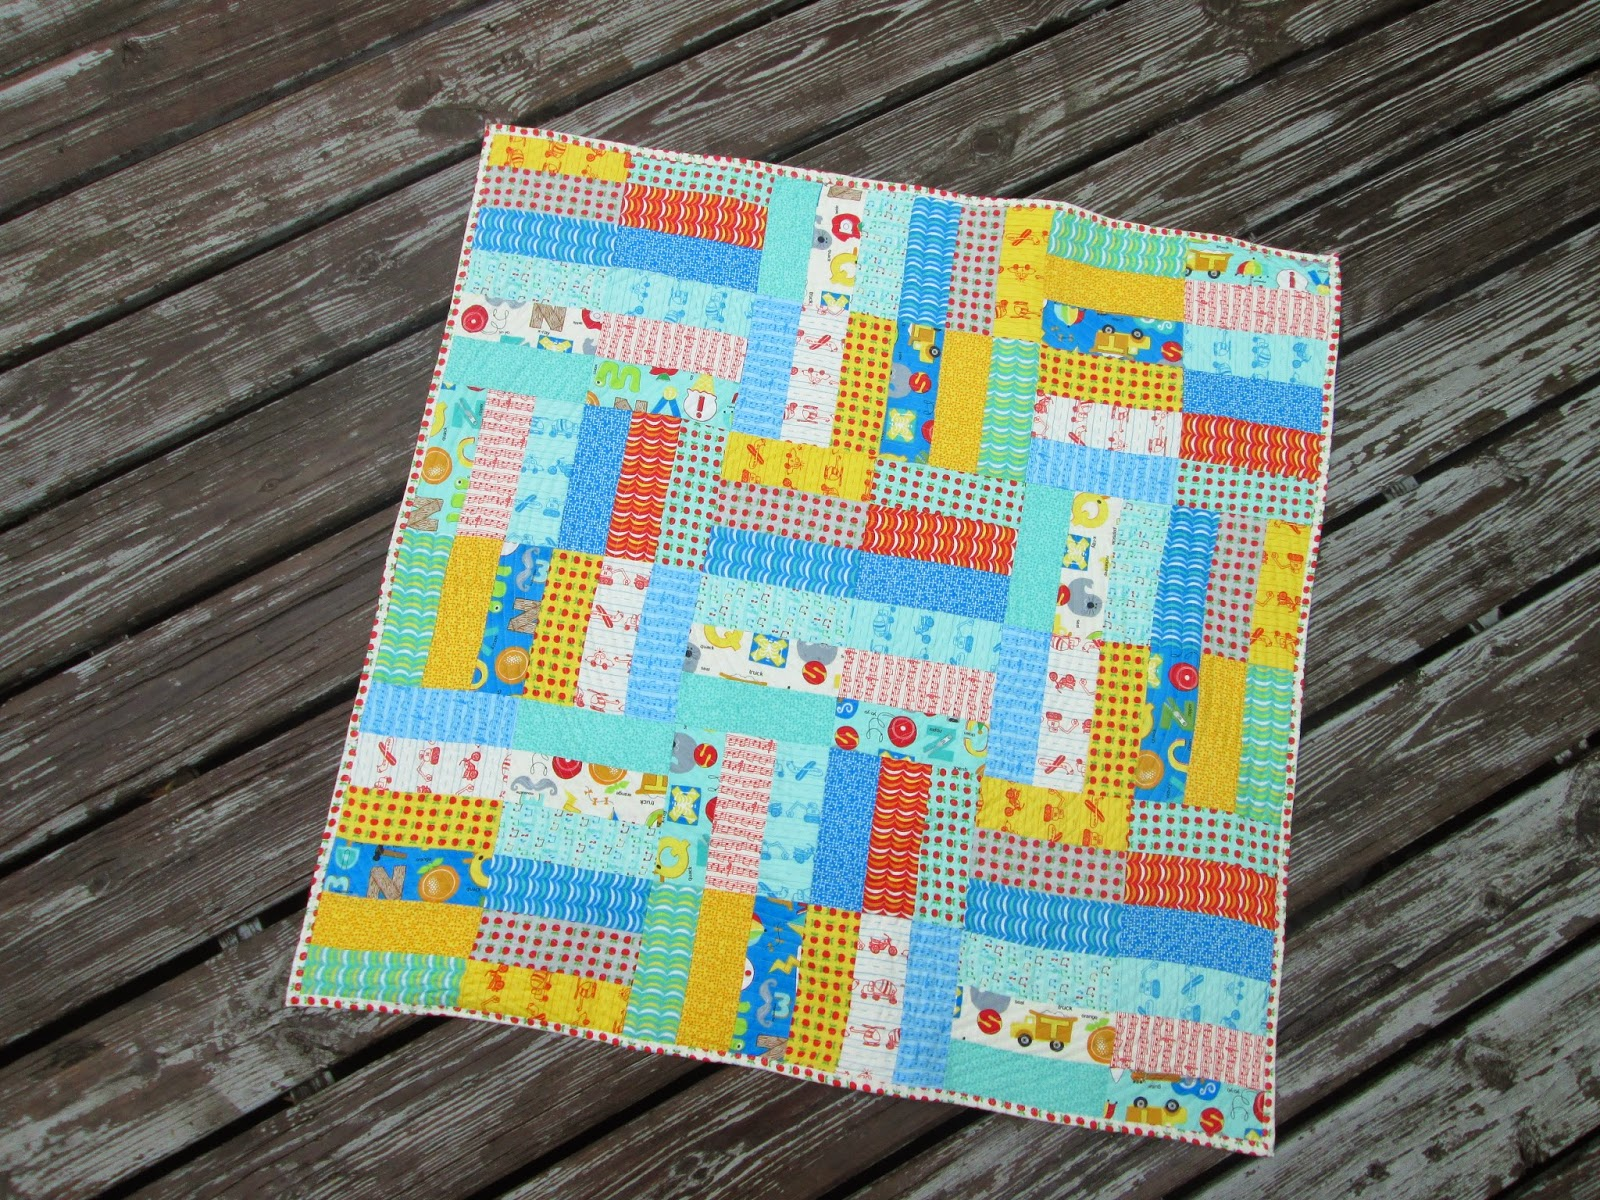 Lasagna Quilt Pattern Jelly Roll : How to Make a Jelly Roll Quilt: 49 Easy Patterns Guide Patterns